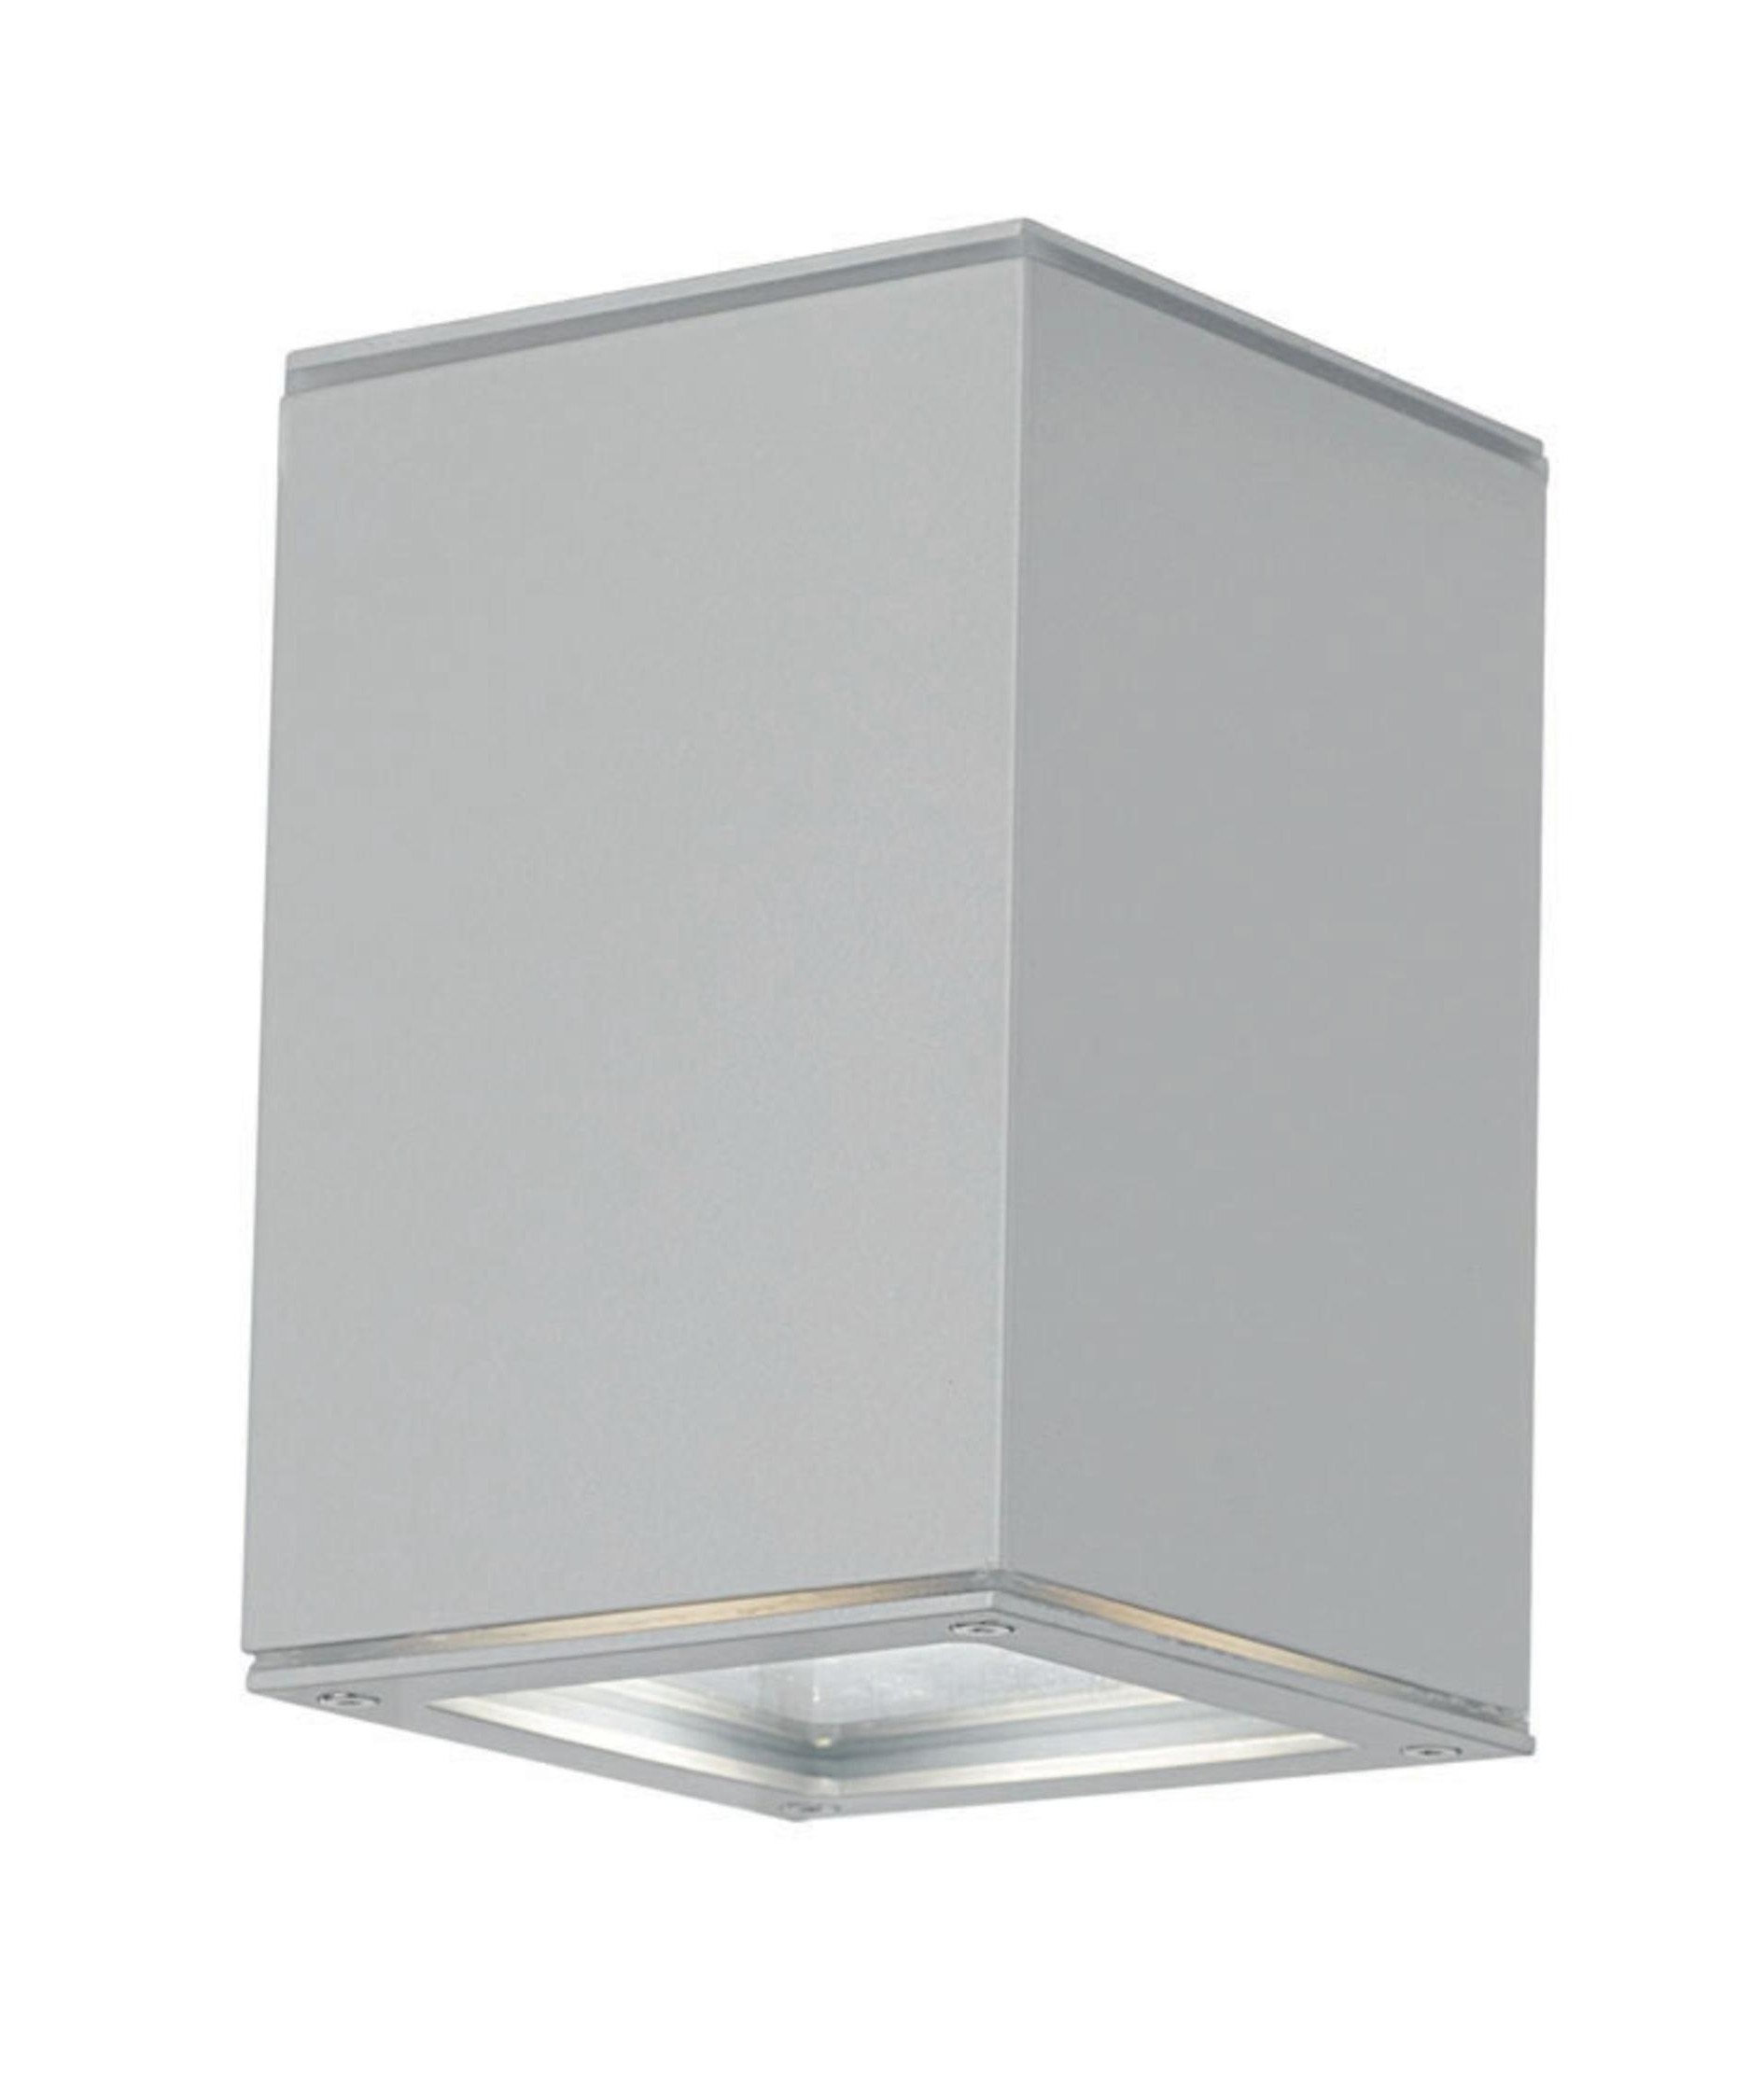 Well Known Outdoor Light : Striking Outdoor Wall Lights Argos , Outdoor Wall With Regard To Argos Outdoor Wall Lighting (View 19 of 20)